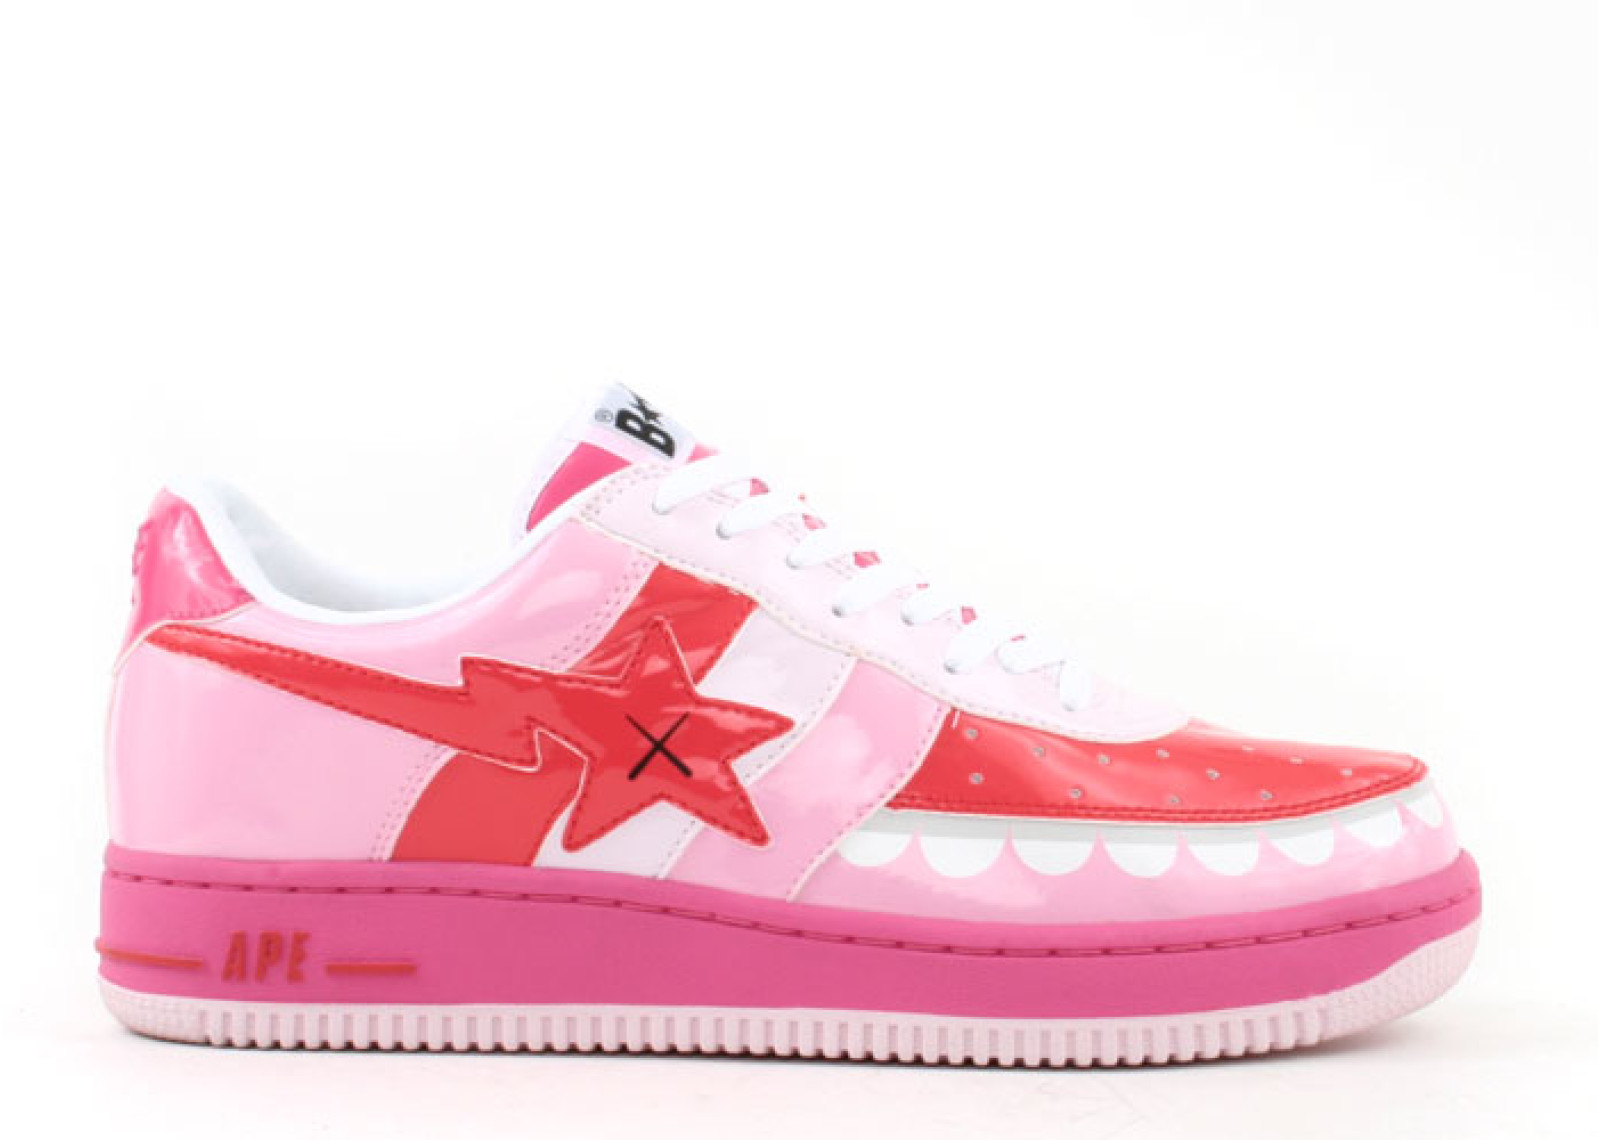 Bapesta | Bapestas Shoes | Bapesta Shoes for Sale